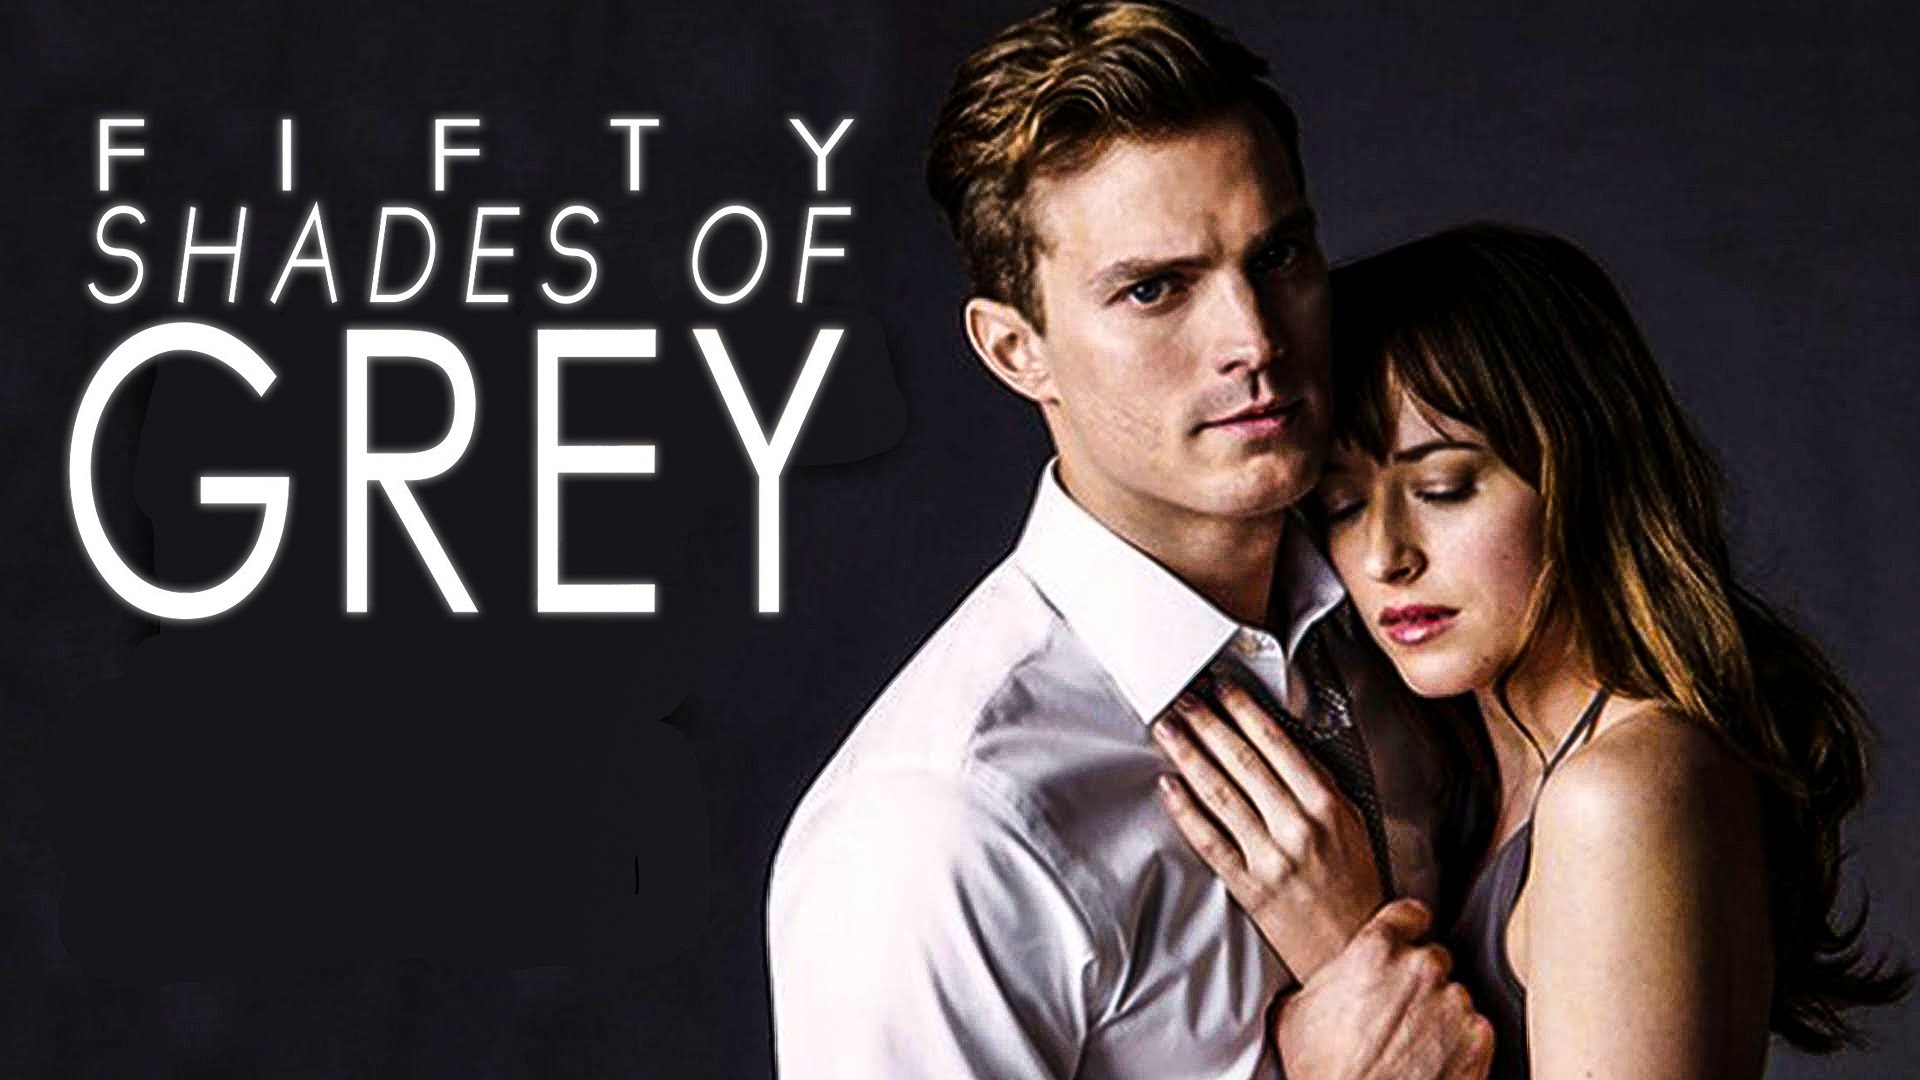 Fifty Shades Of Grey Wallpaper 1920x1080 69808